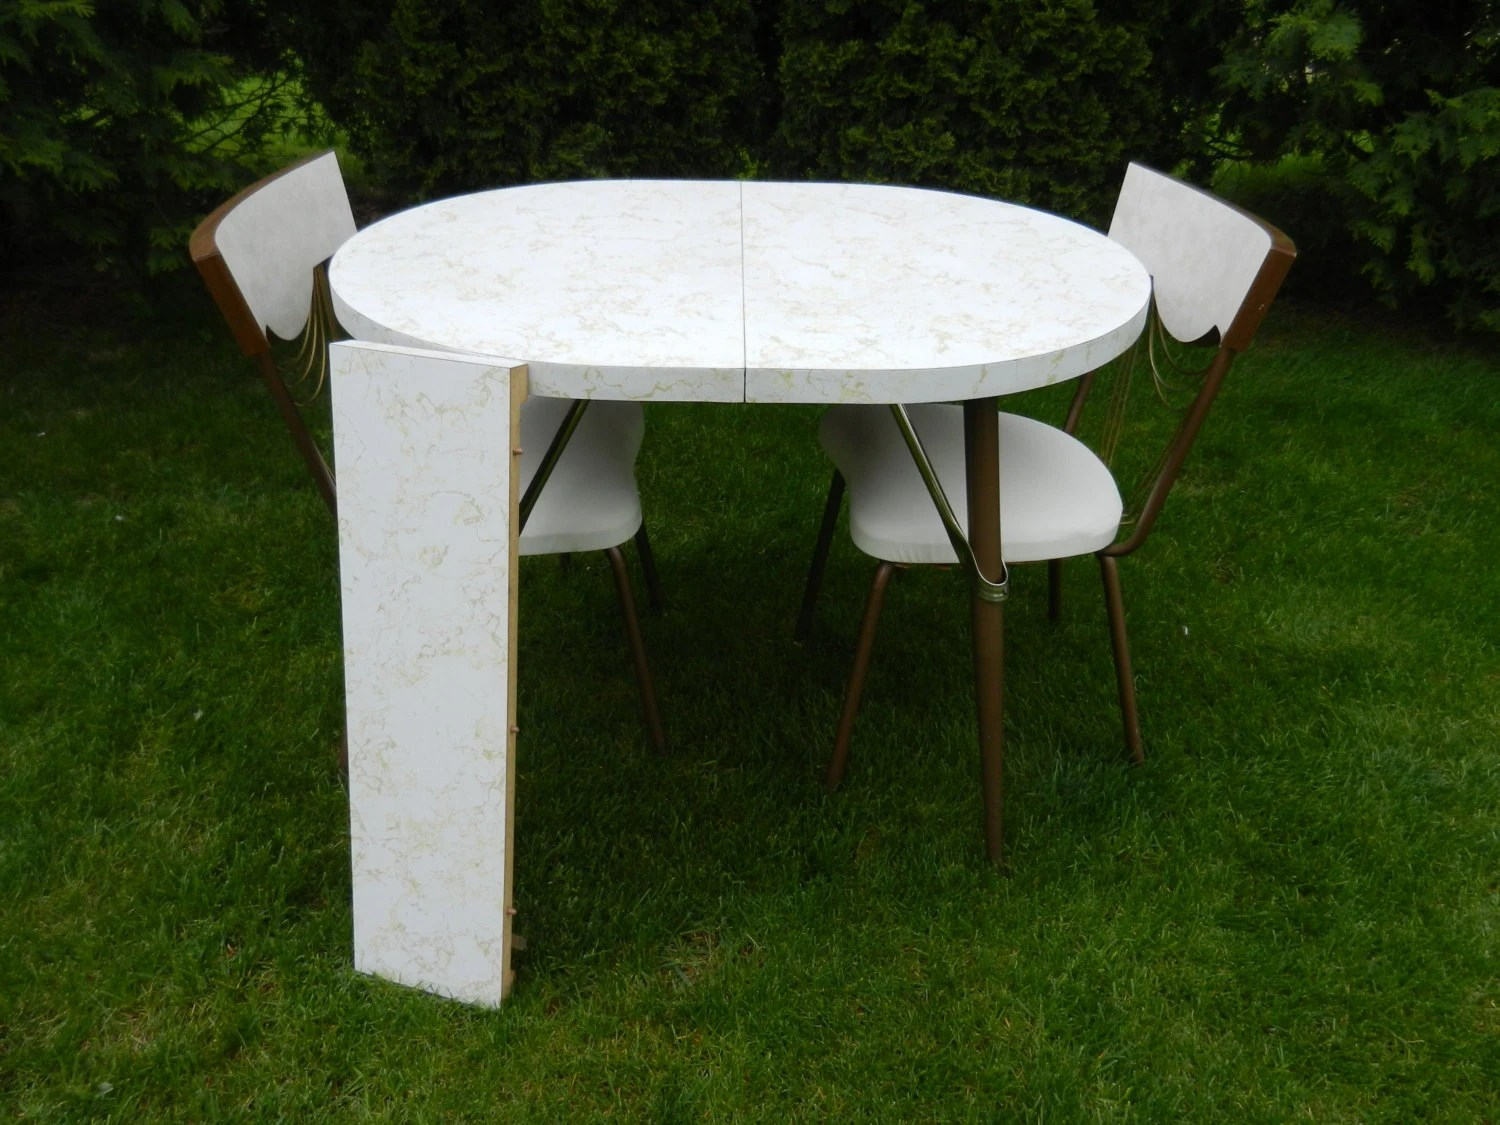 Formica Table And Chairs Formica Kitchen Table And Chairs Set Dinette Set Table With